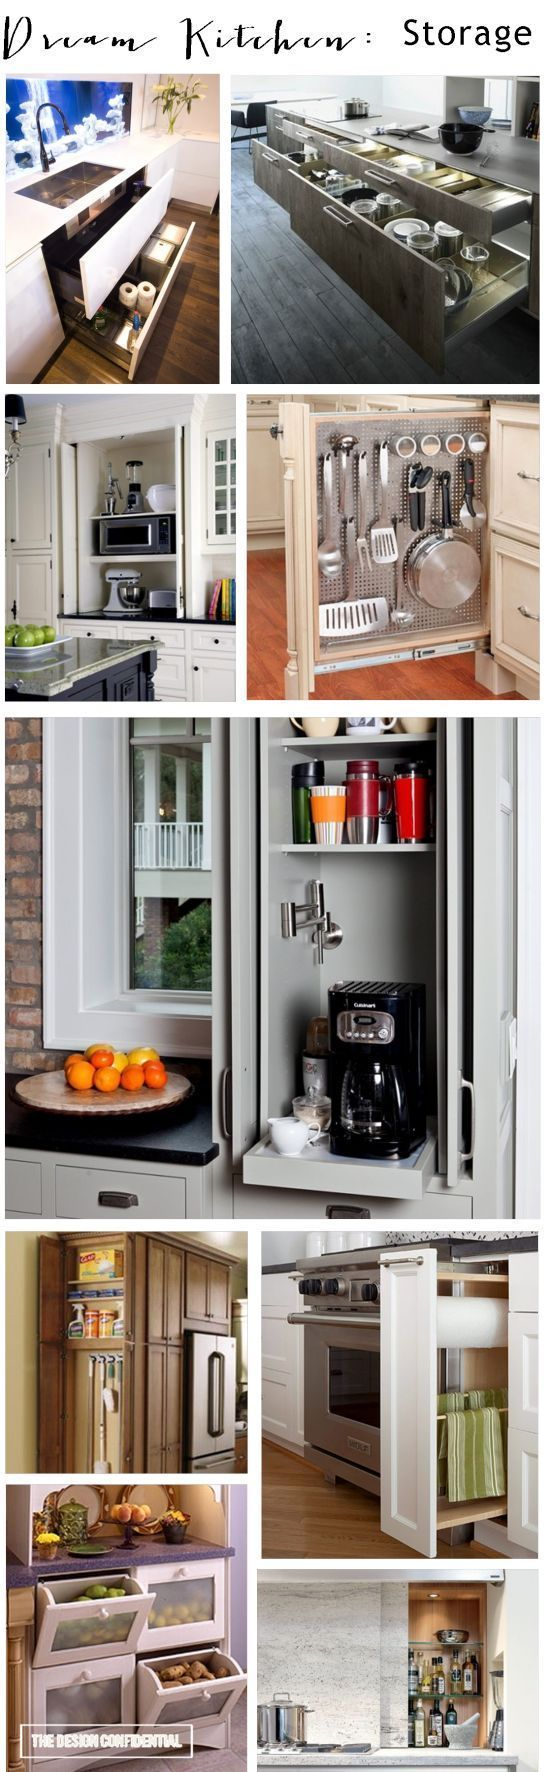 40 Clever Storage Ideas That Will Enlarge Your Space | Pinterest